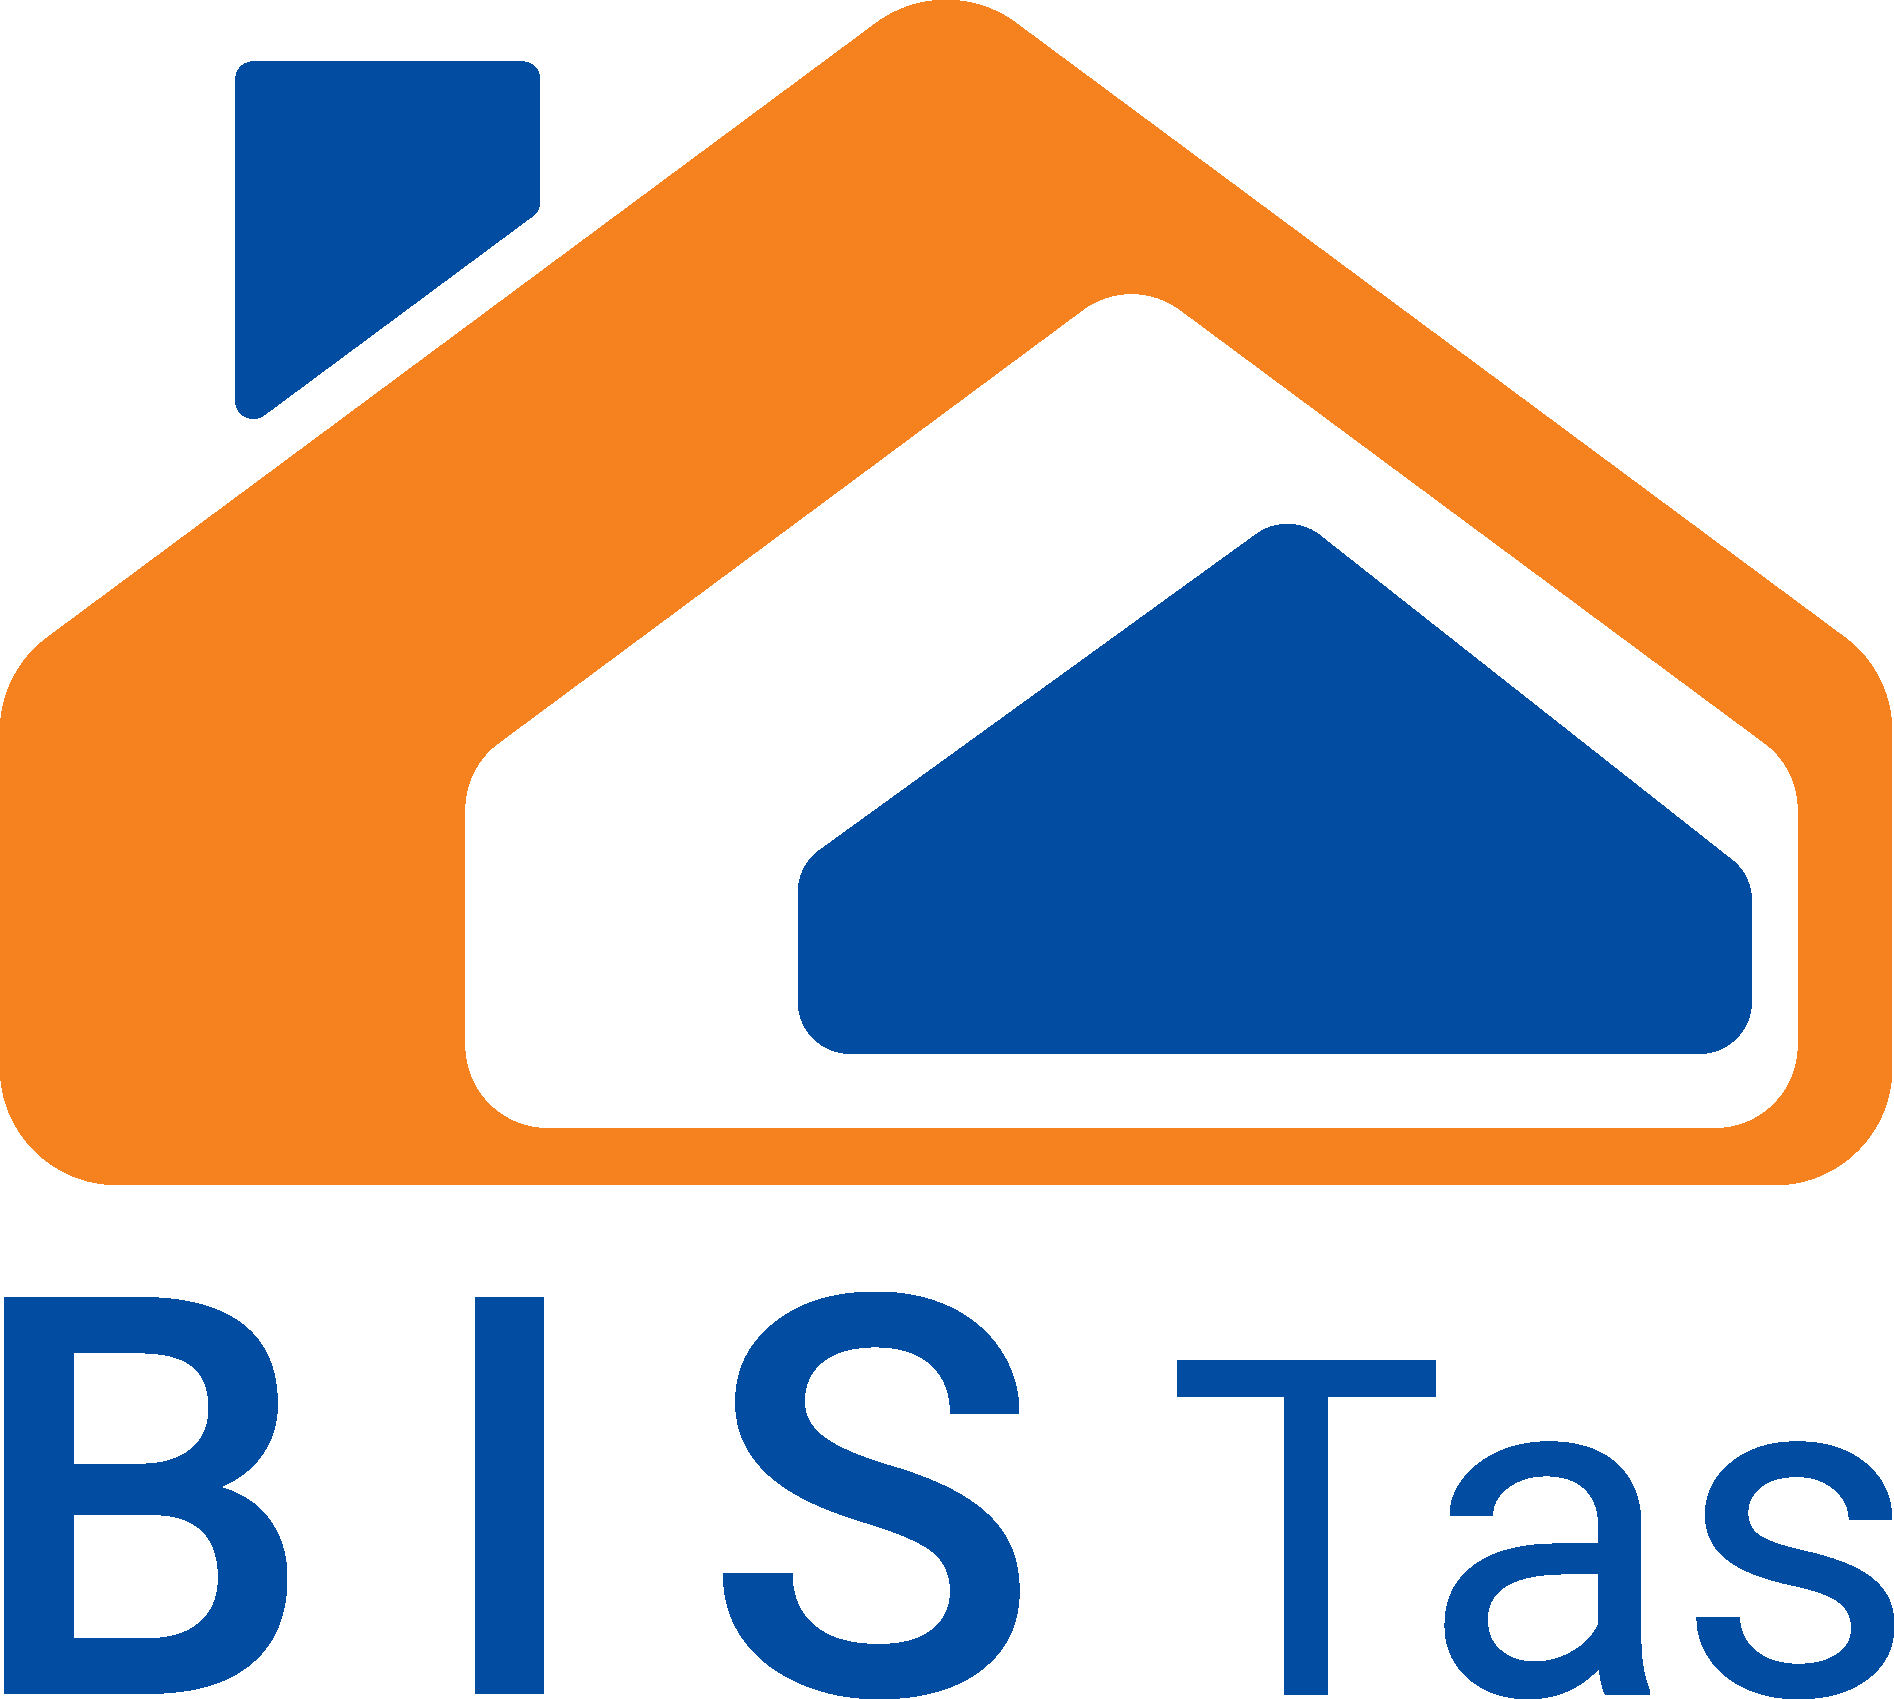 Blue and orange business icon